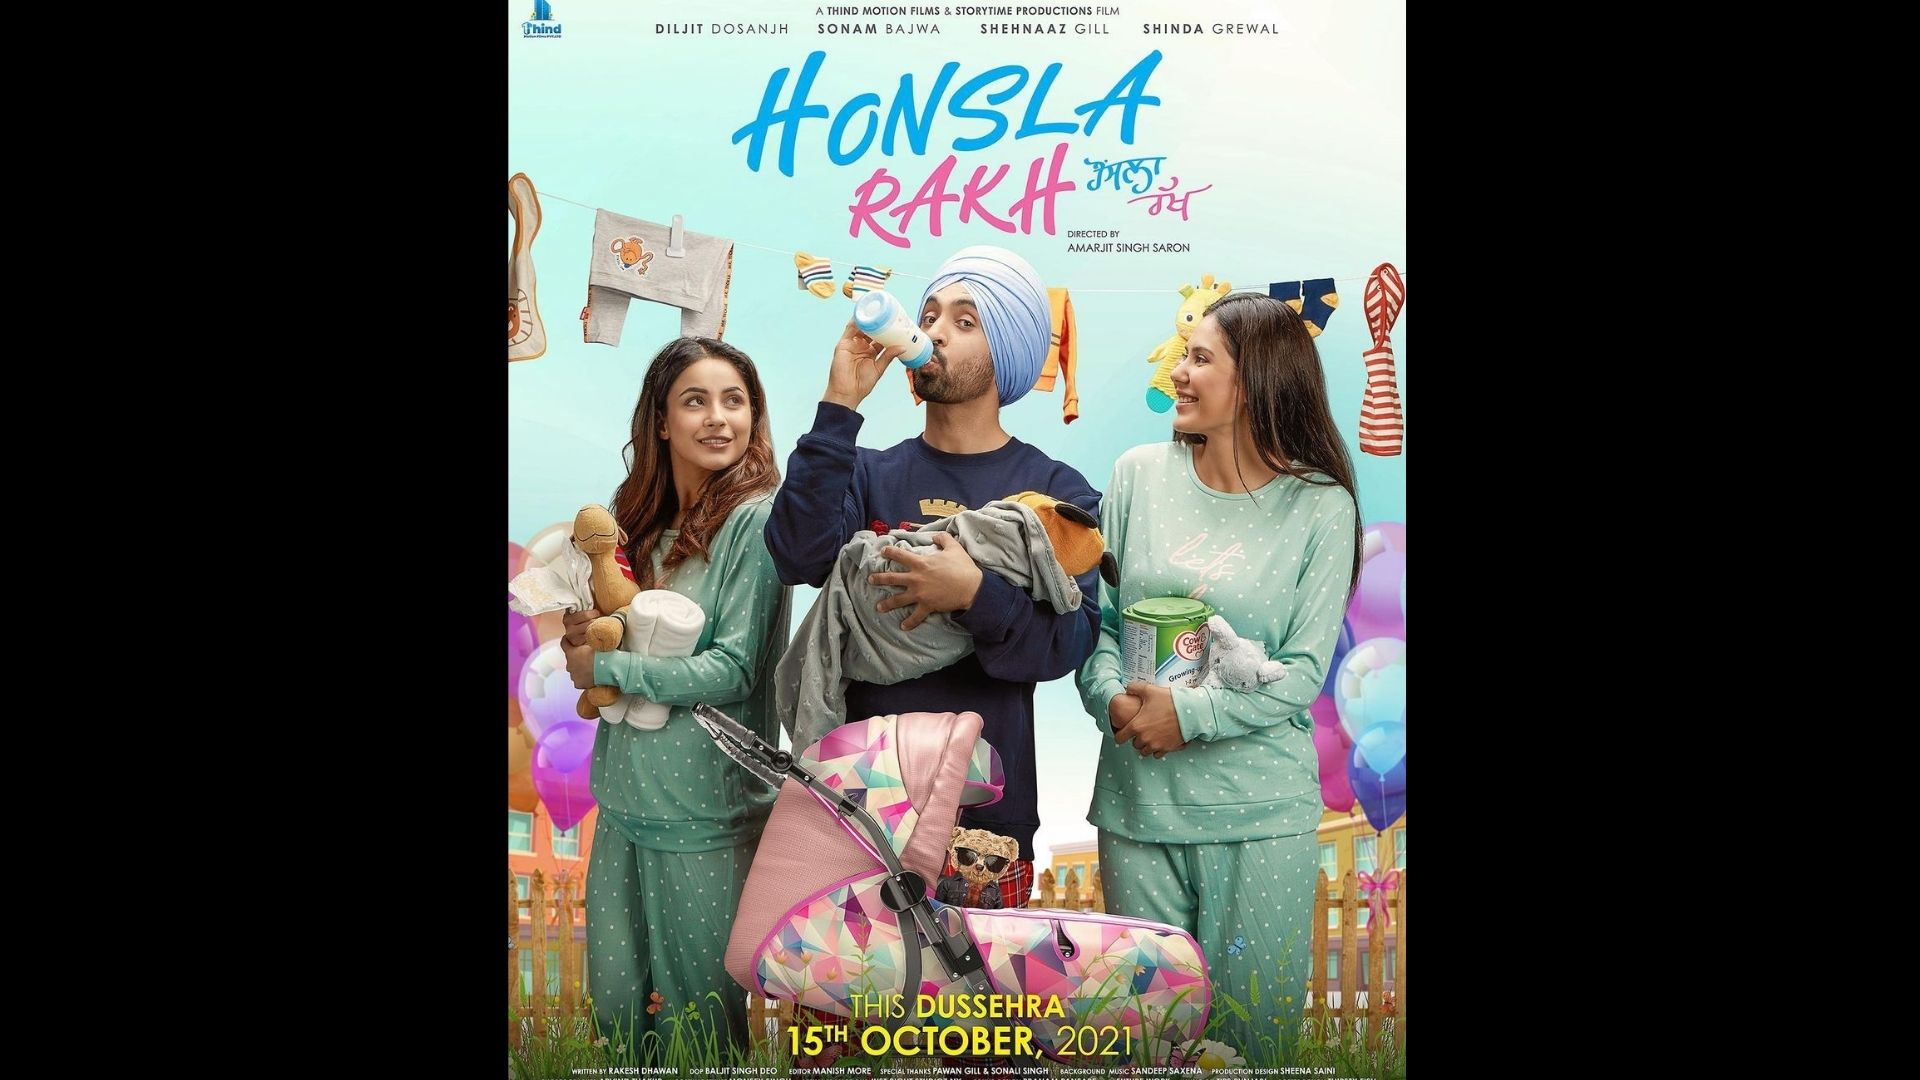 After Sidharth Shukla's Death, Shehnaaz Gill To Return To Silver Screen With Diljit Dosanjh's Honsla Rakh; Makers Announce The Trailer Release Date